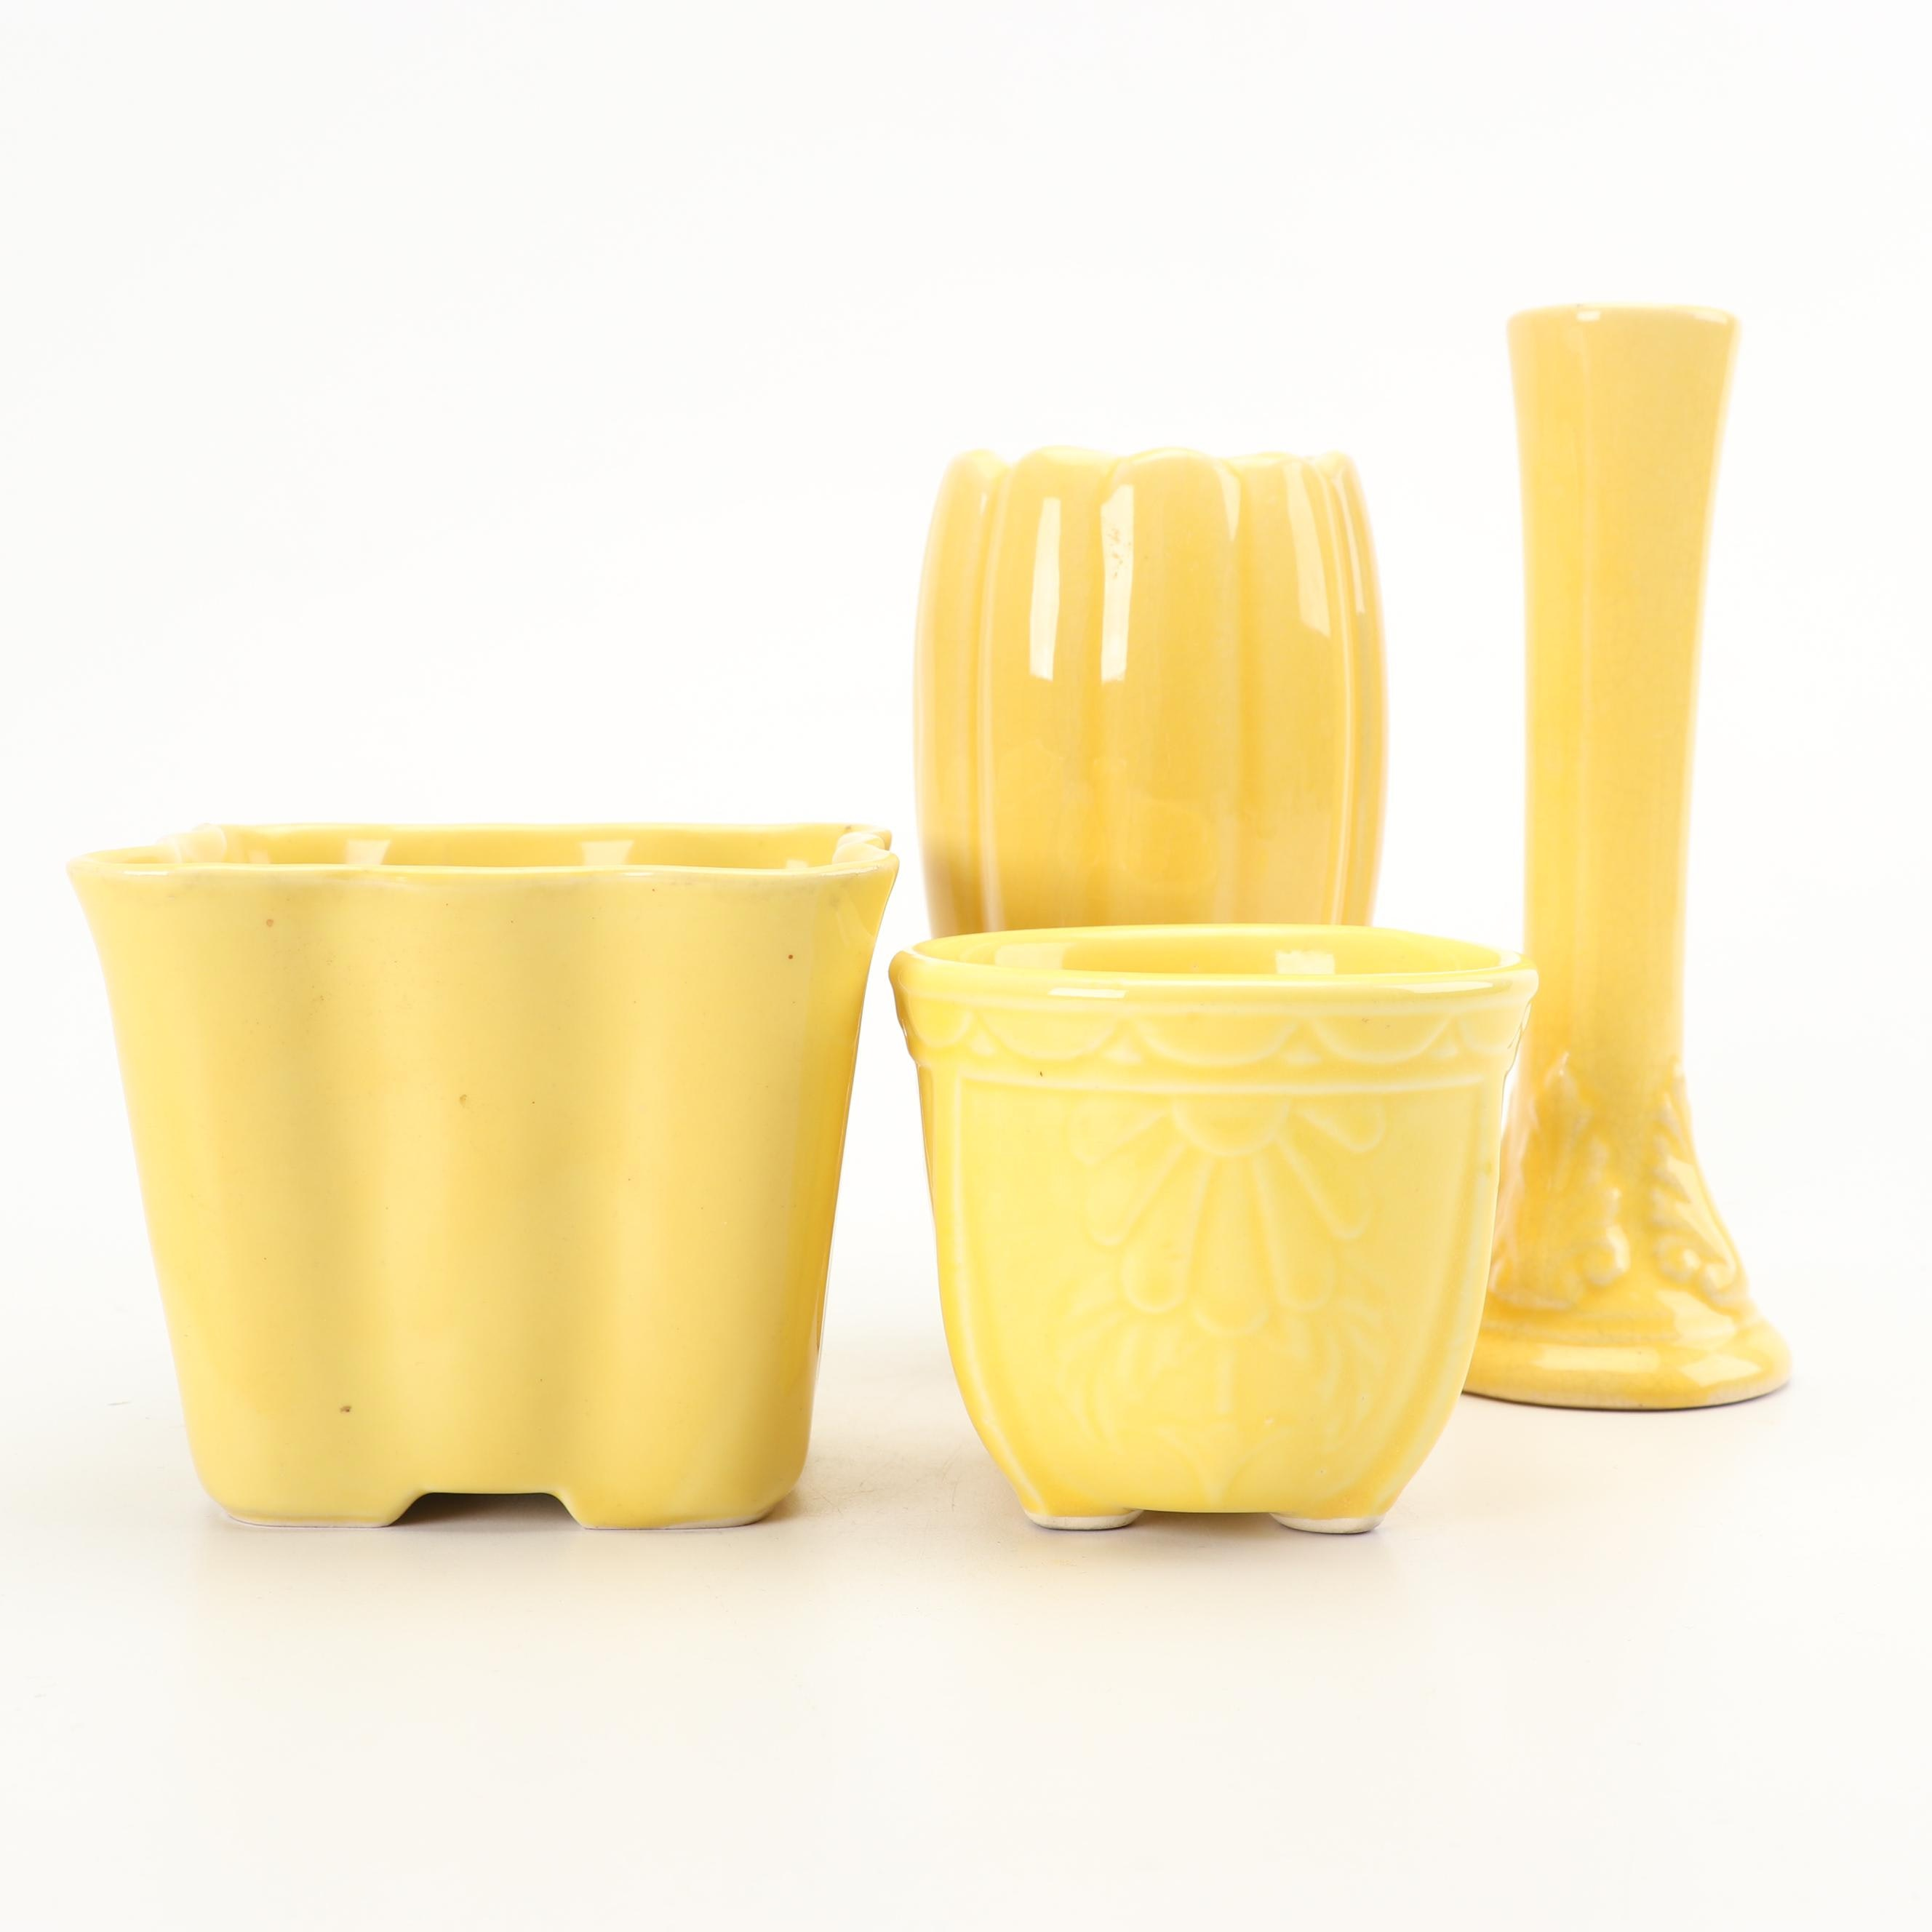 McCoy Bud Vase with Vase and Planters, Mid-Century